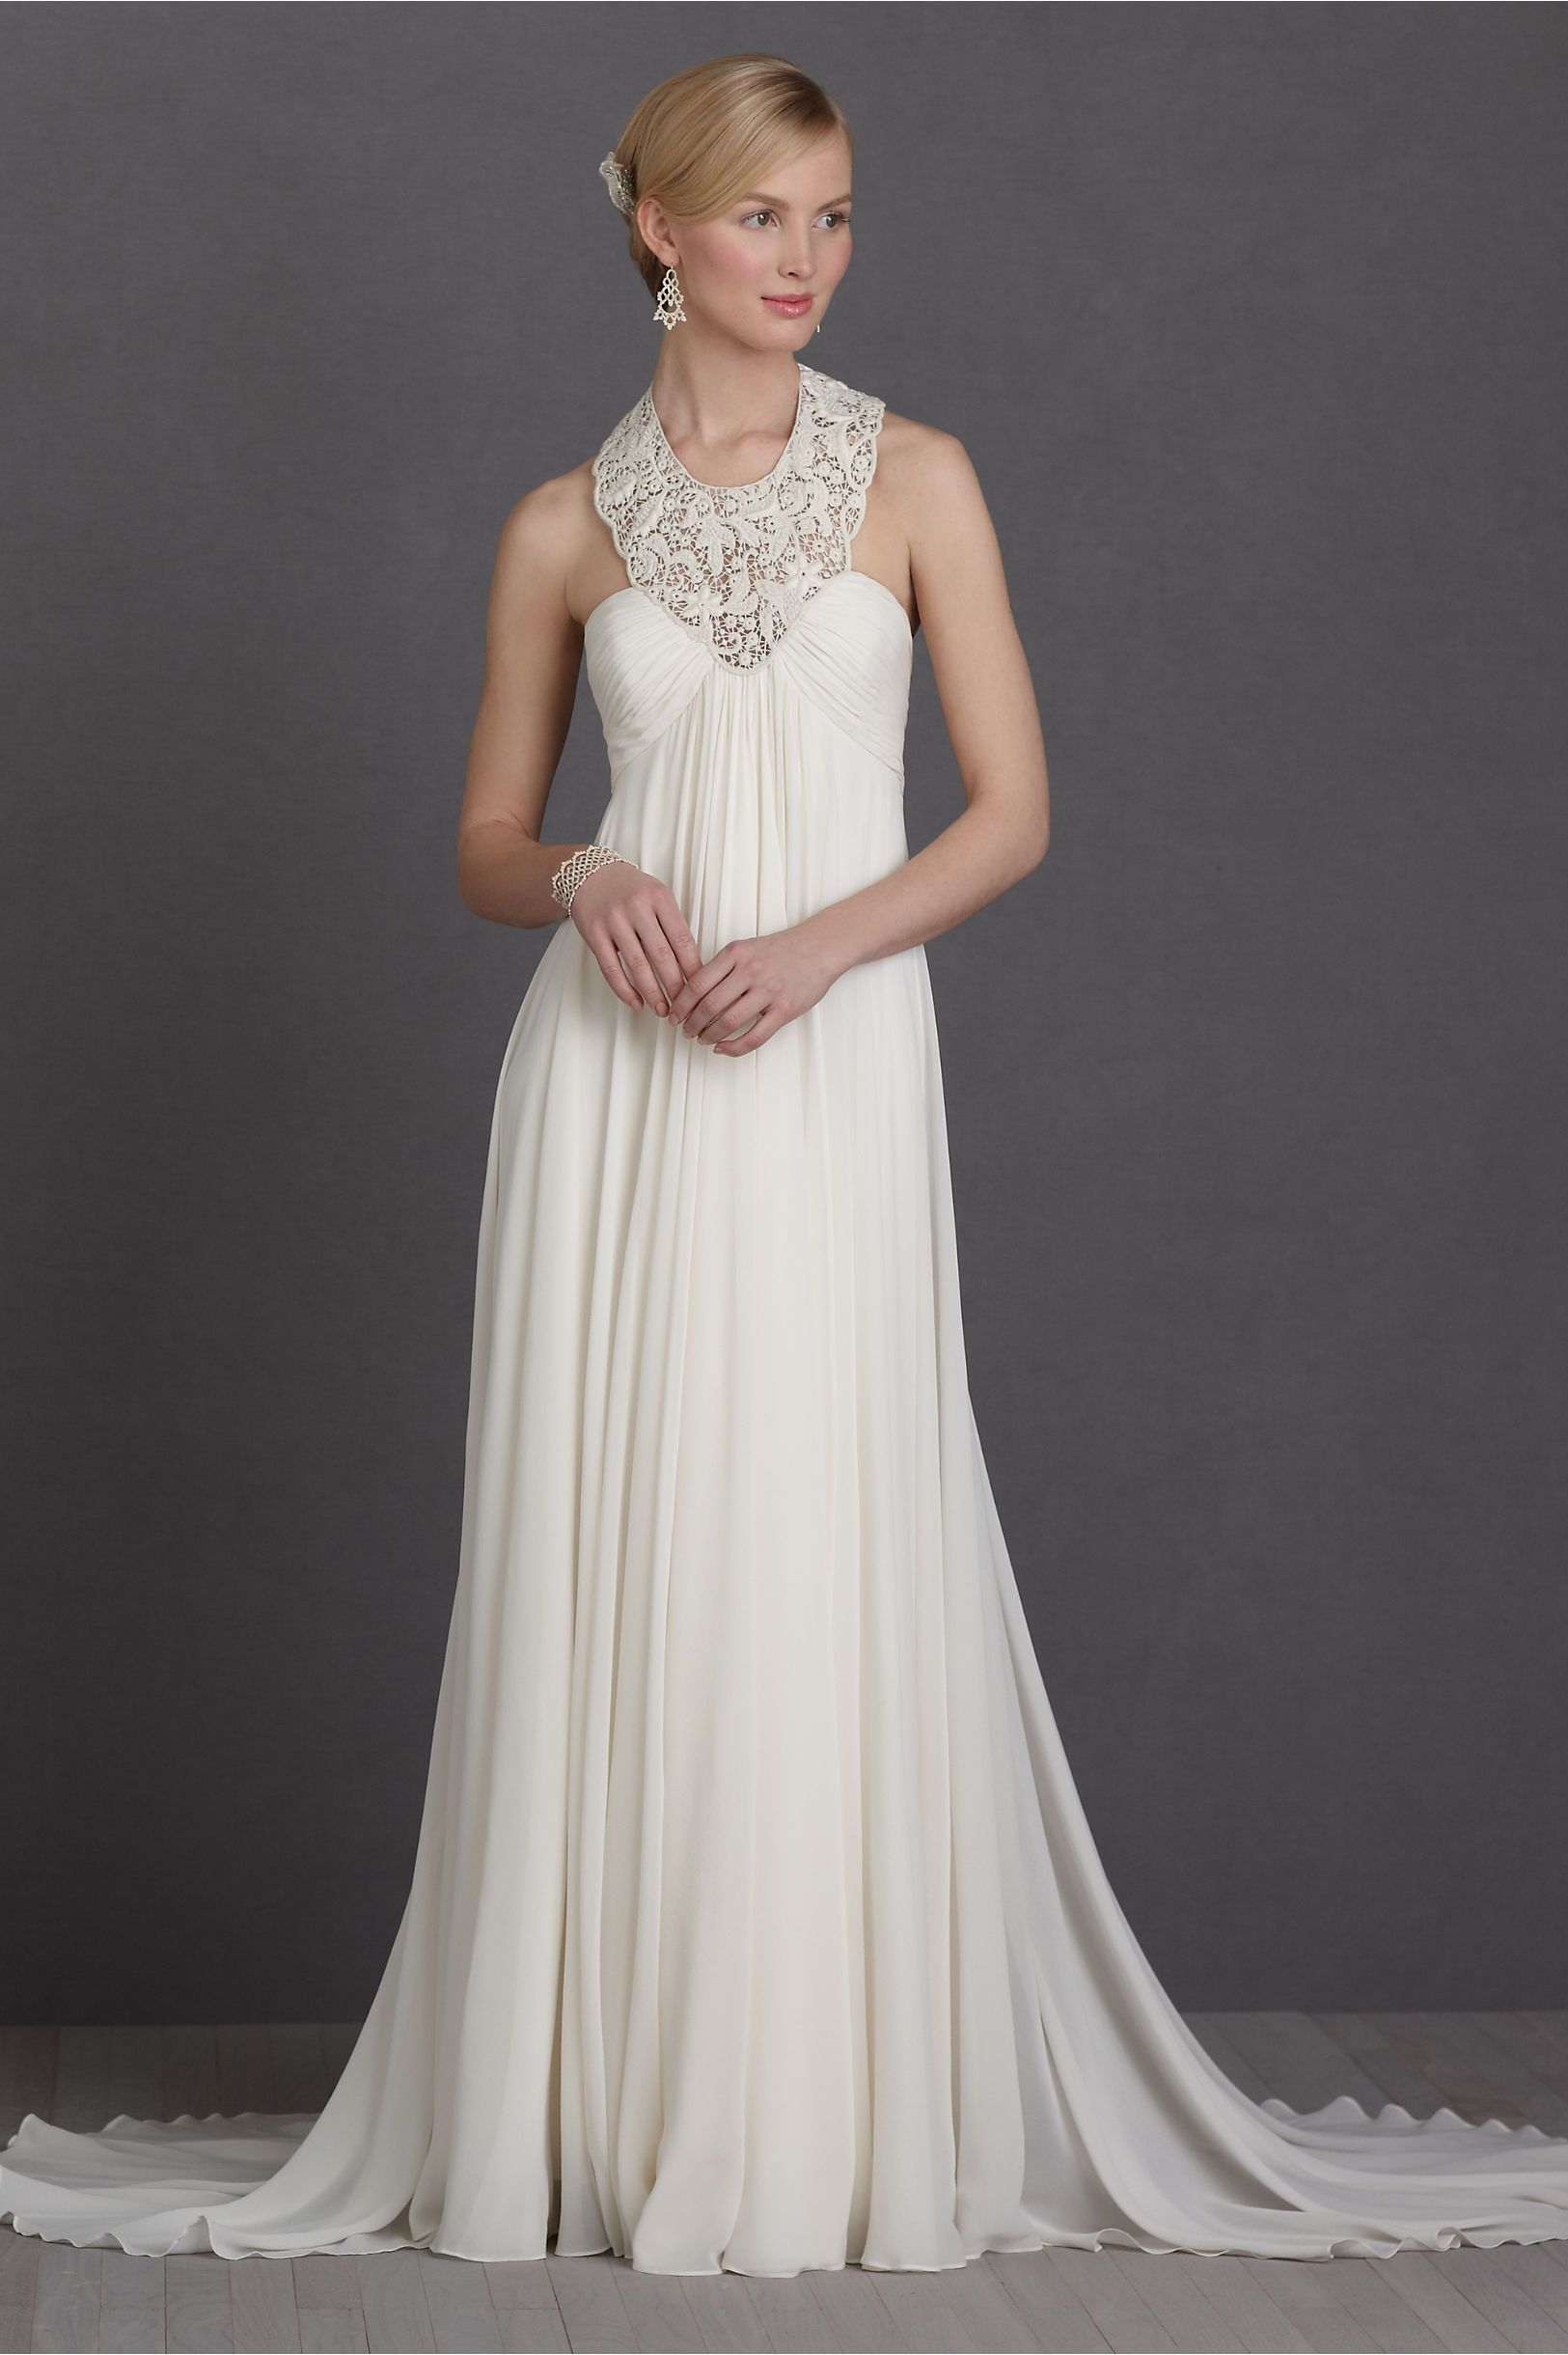 Blossoming Weir Gown, BHLDN. Chiffon, amazing lace collar.